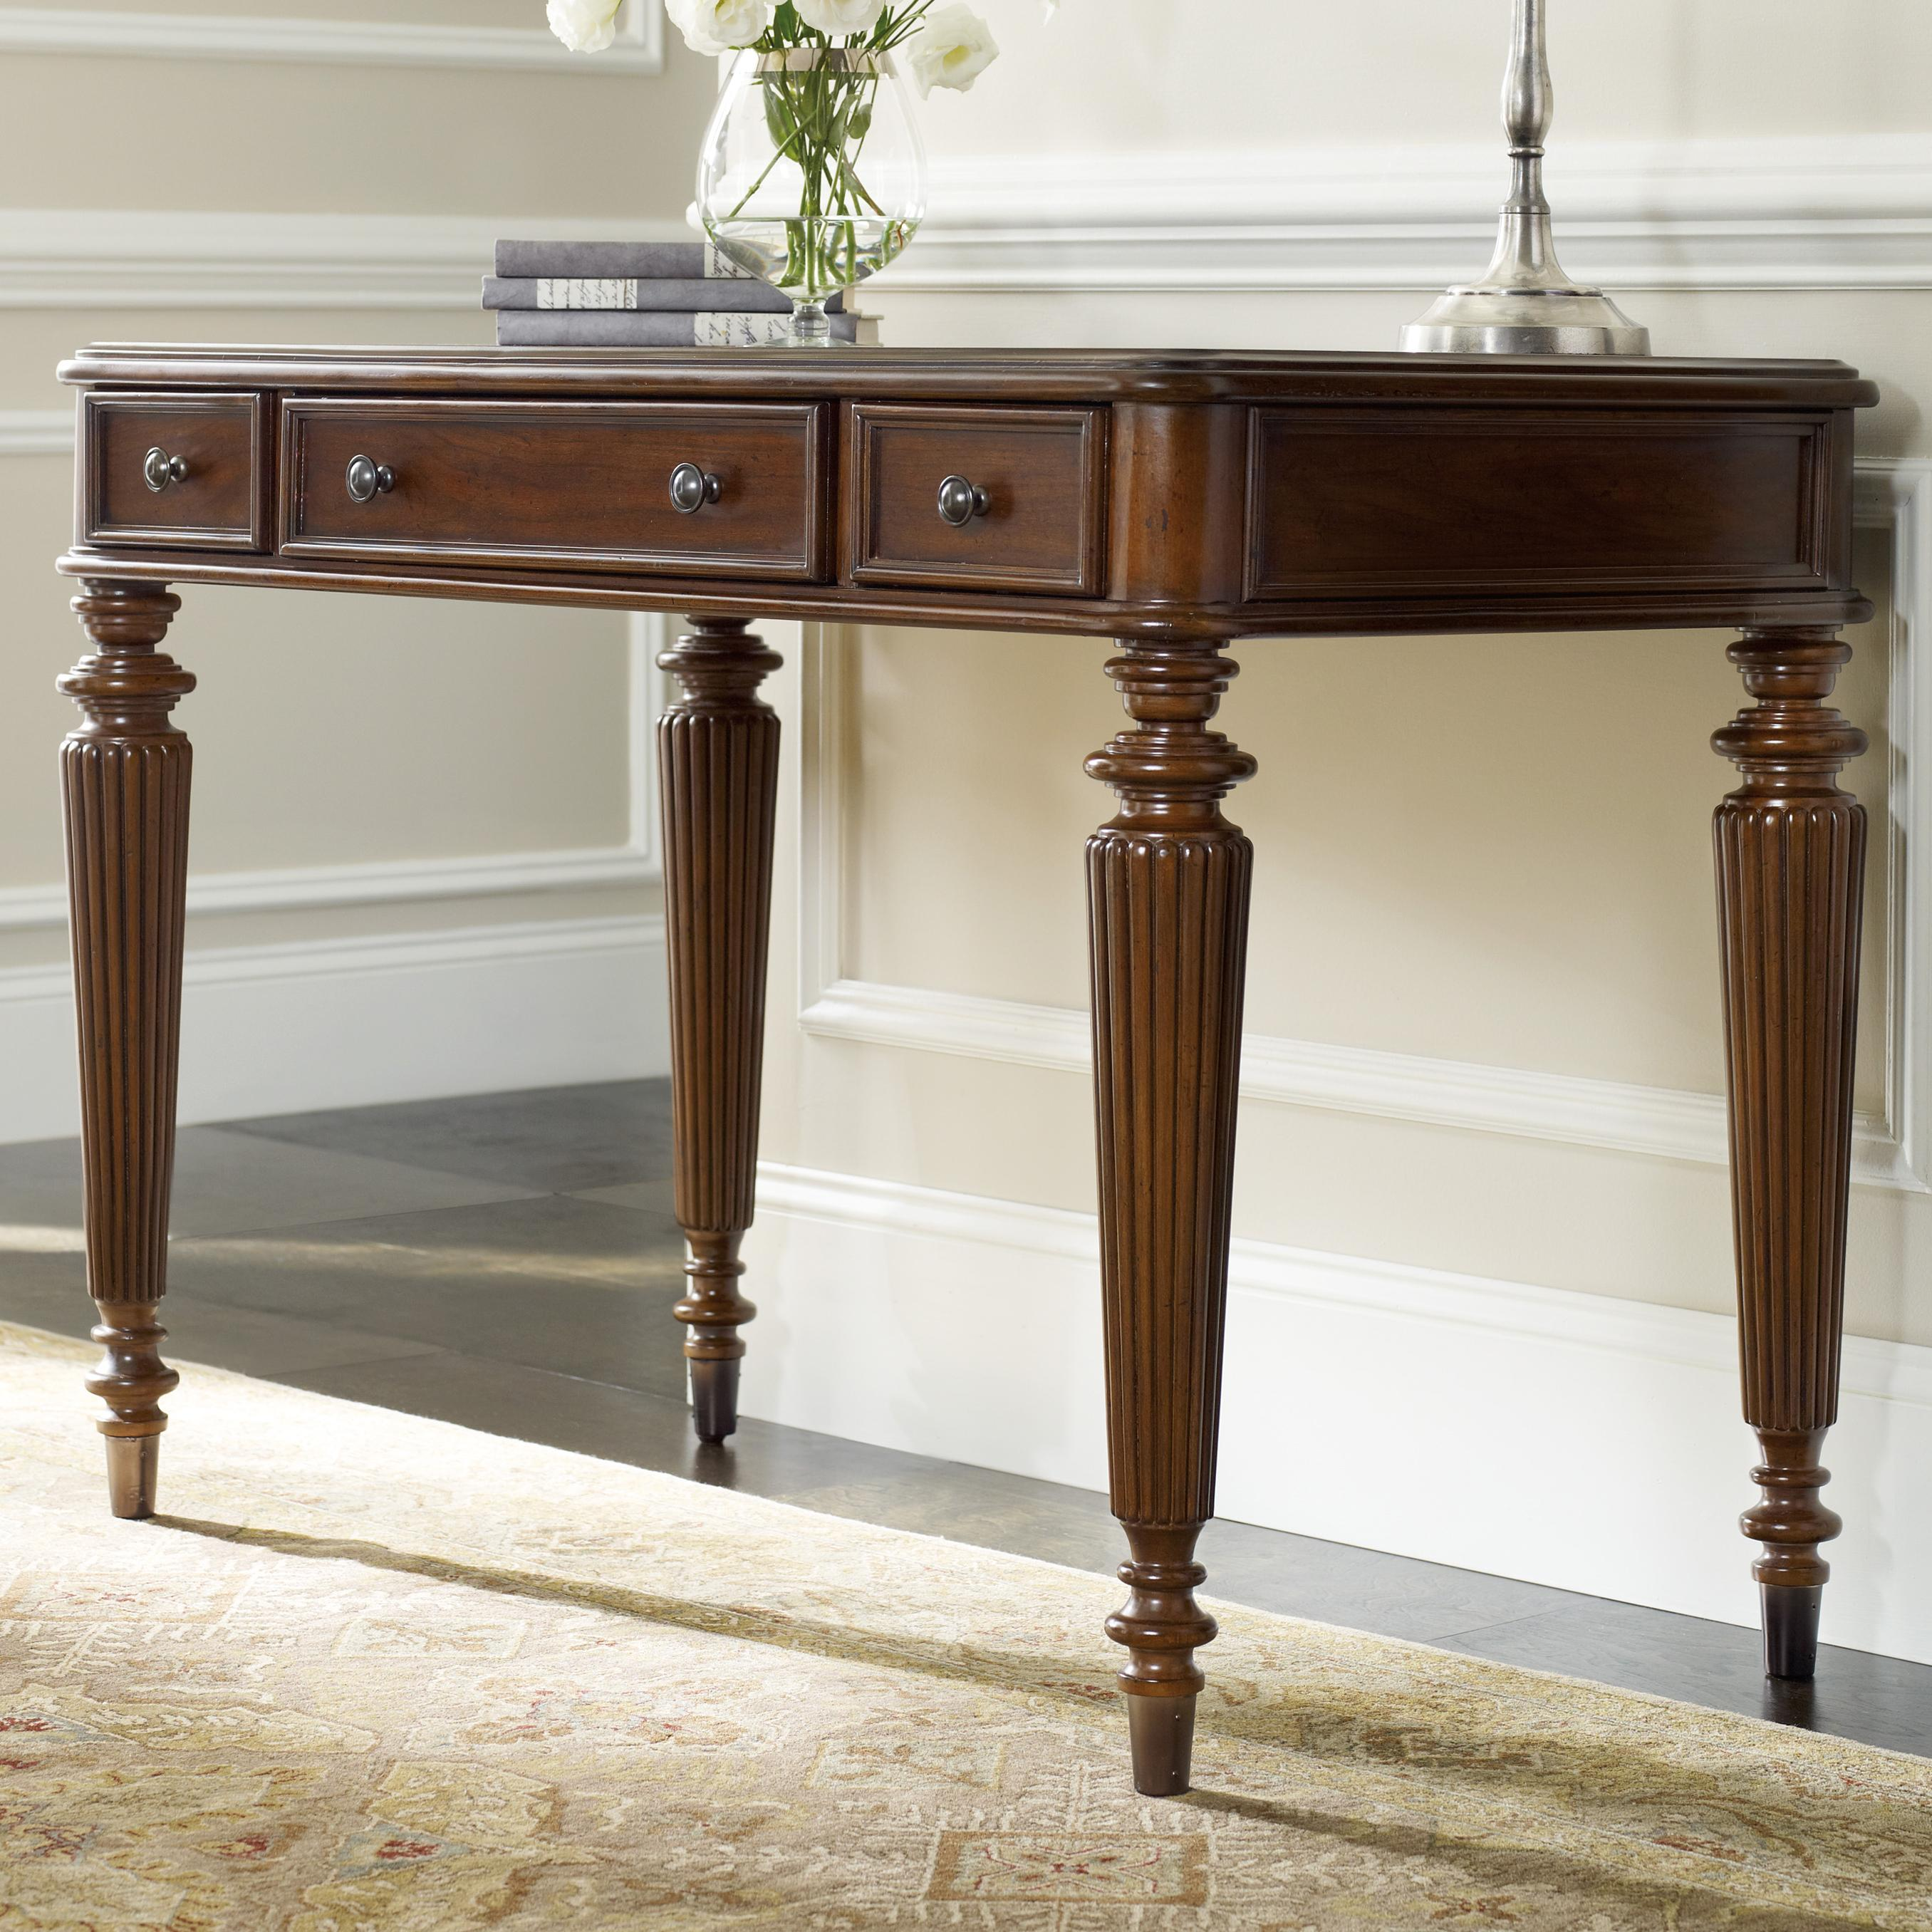 Home Office Leg Desk by Hooker Furniture at Alison Craig Home Furnishings